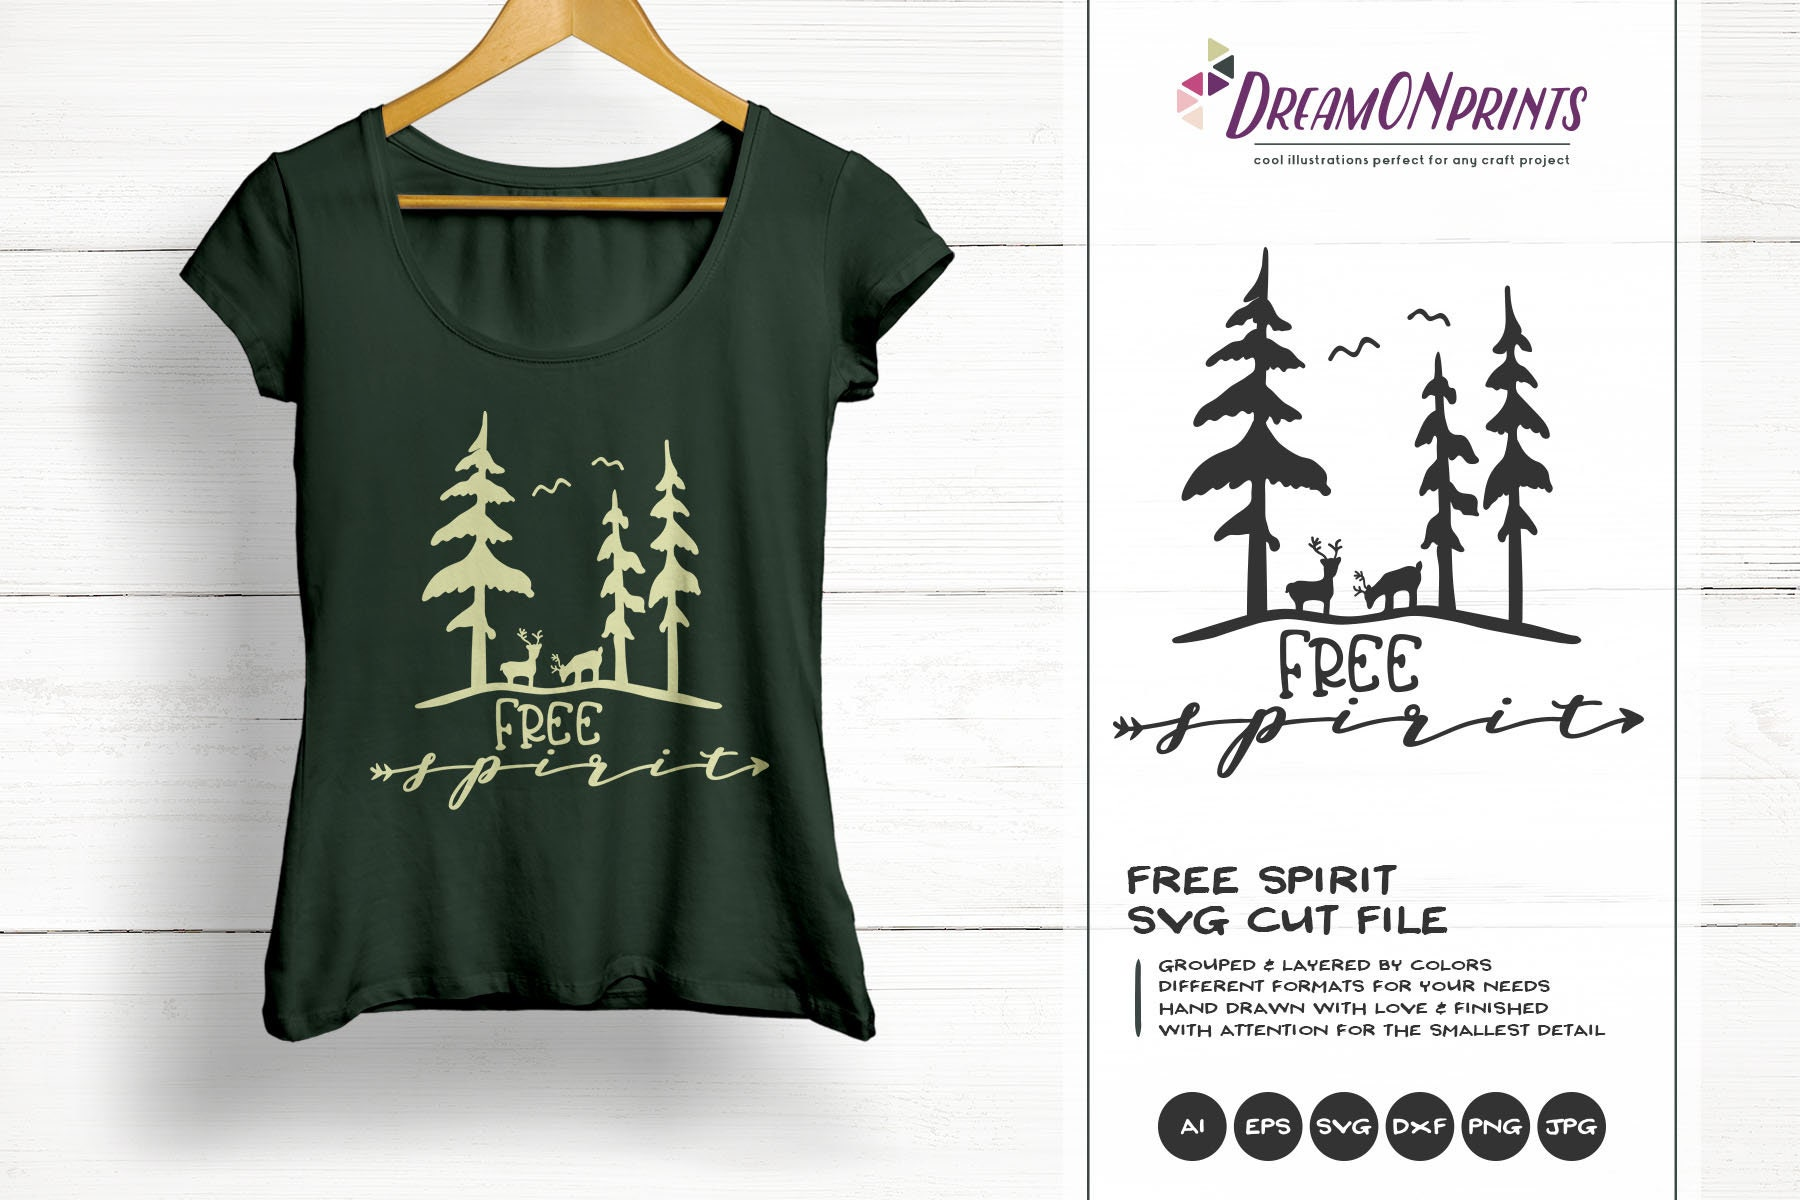 Free Spirit Svg Forest Svg Deer Svg Antlers Wanderlust Illustration Forest Svg For Cricut Silhouette And More Dop316